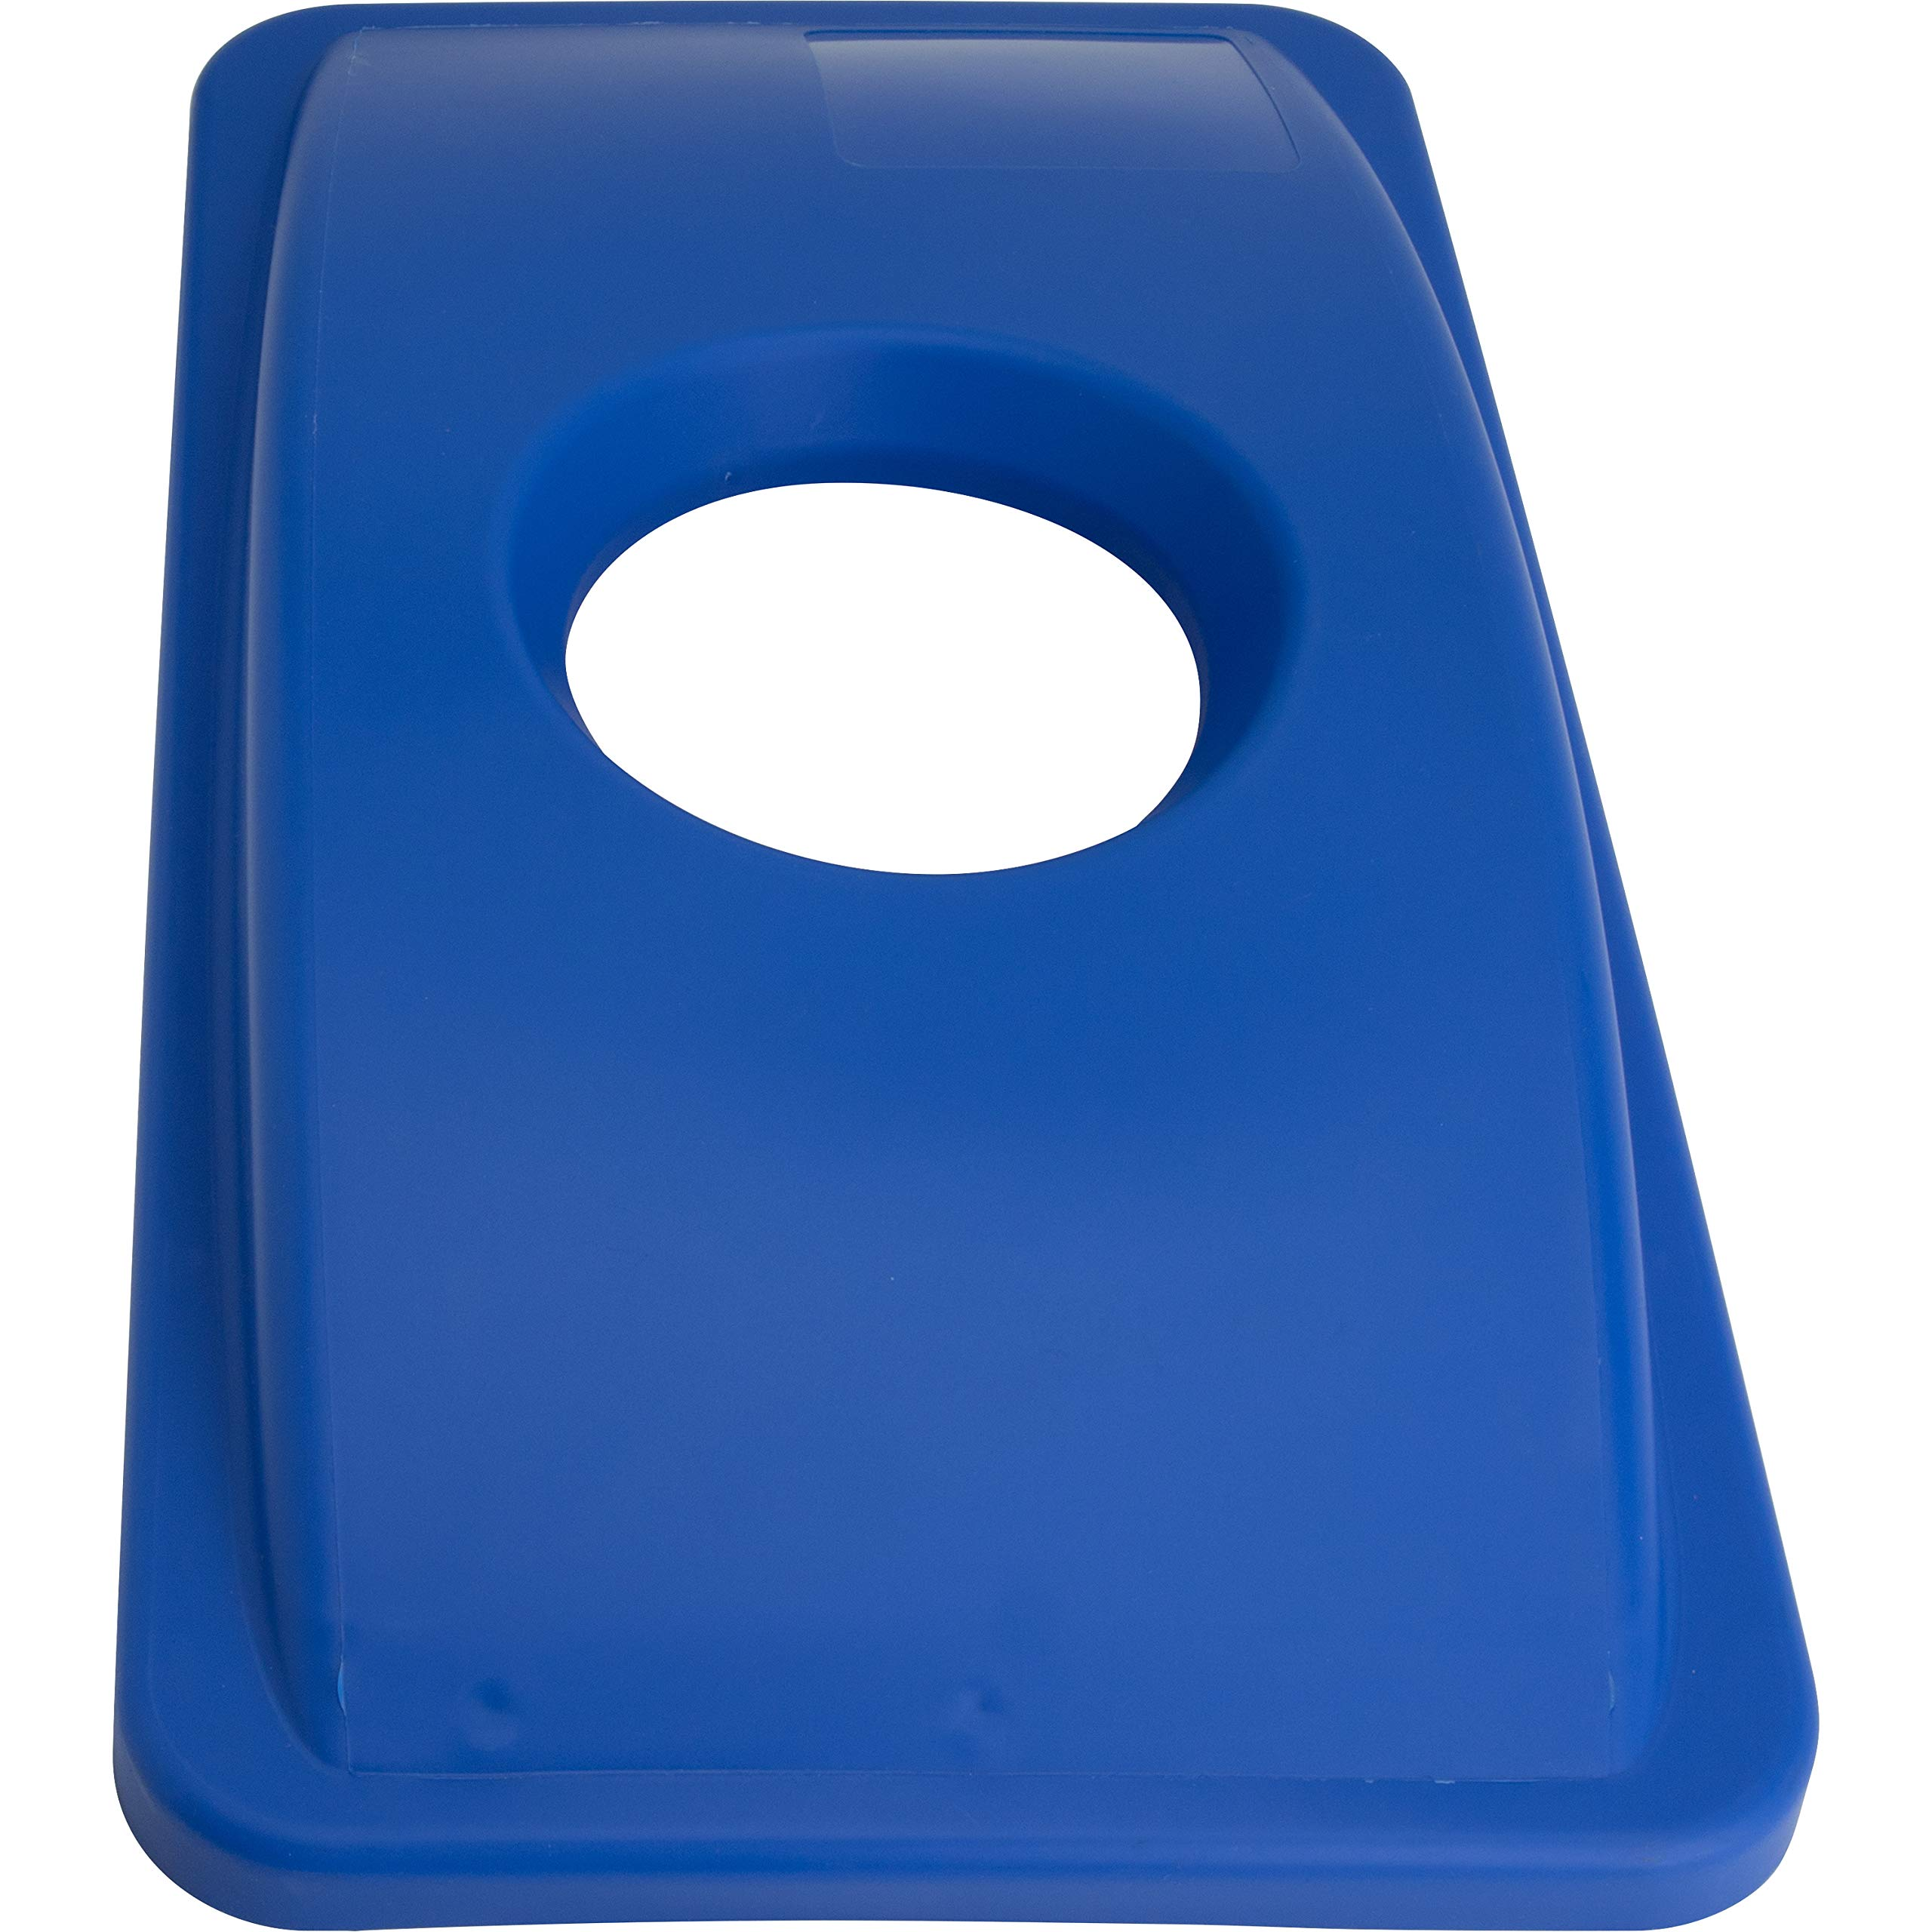 Genuine Joe 98219 23-Gal Recycling Bin Round Cutout Lid by Genuine Joe